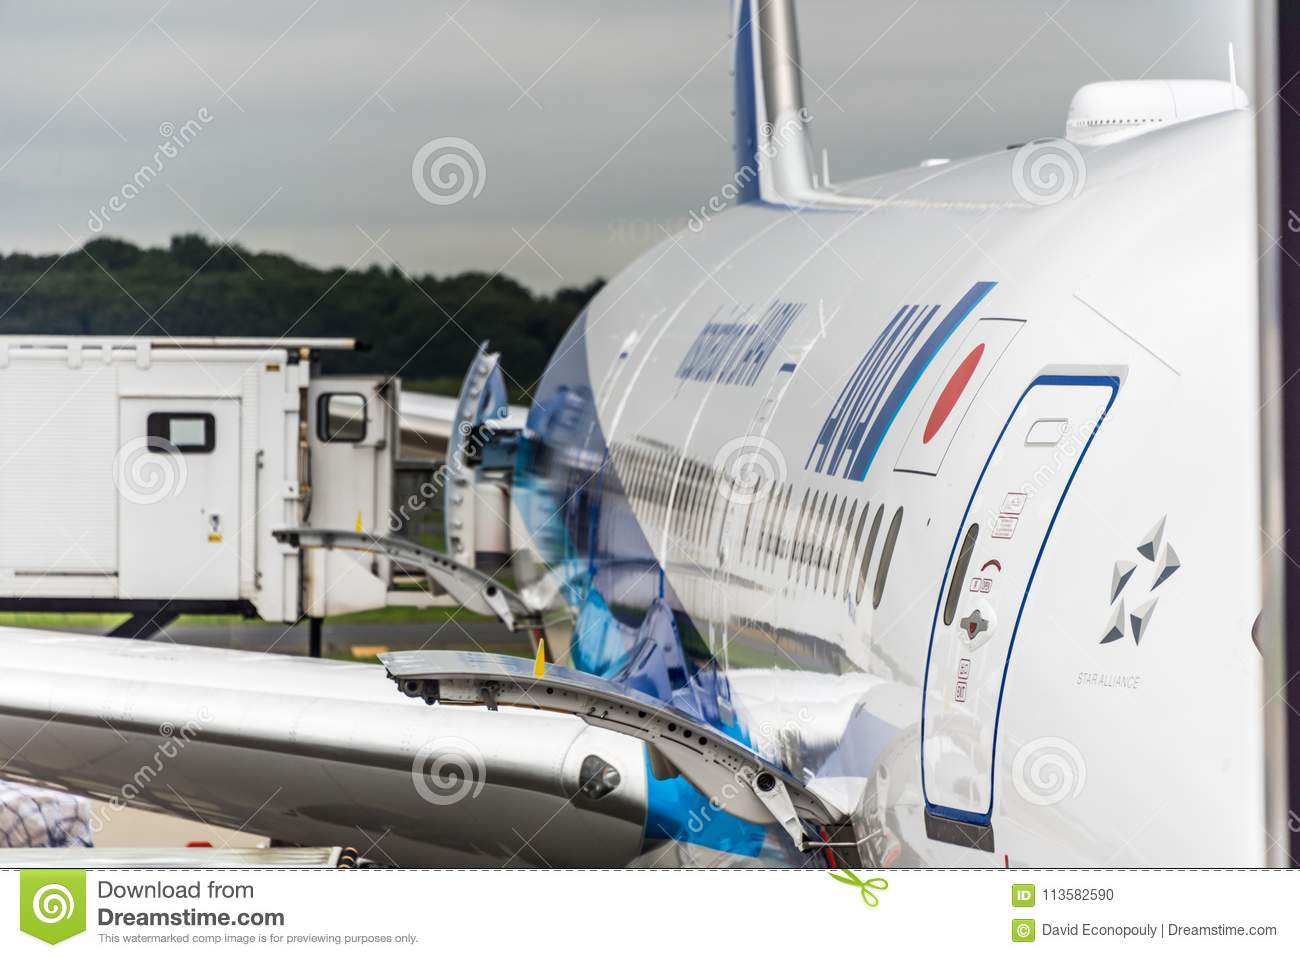 August 18 2017 Narita International Airport Tokyo Japan-Frieght doors open with freight being loaded on All Nipon jetlin & August 18 2017: Narita International Airport Tokyo Japan-Frieght ...